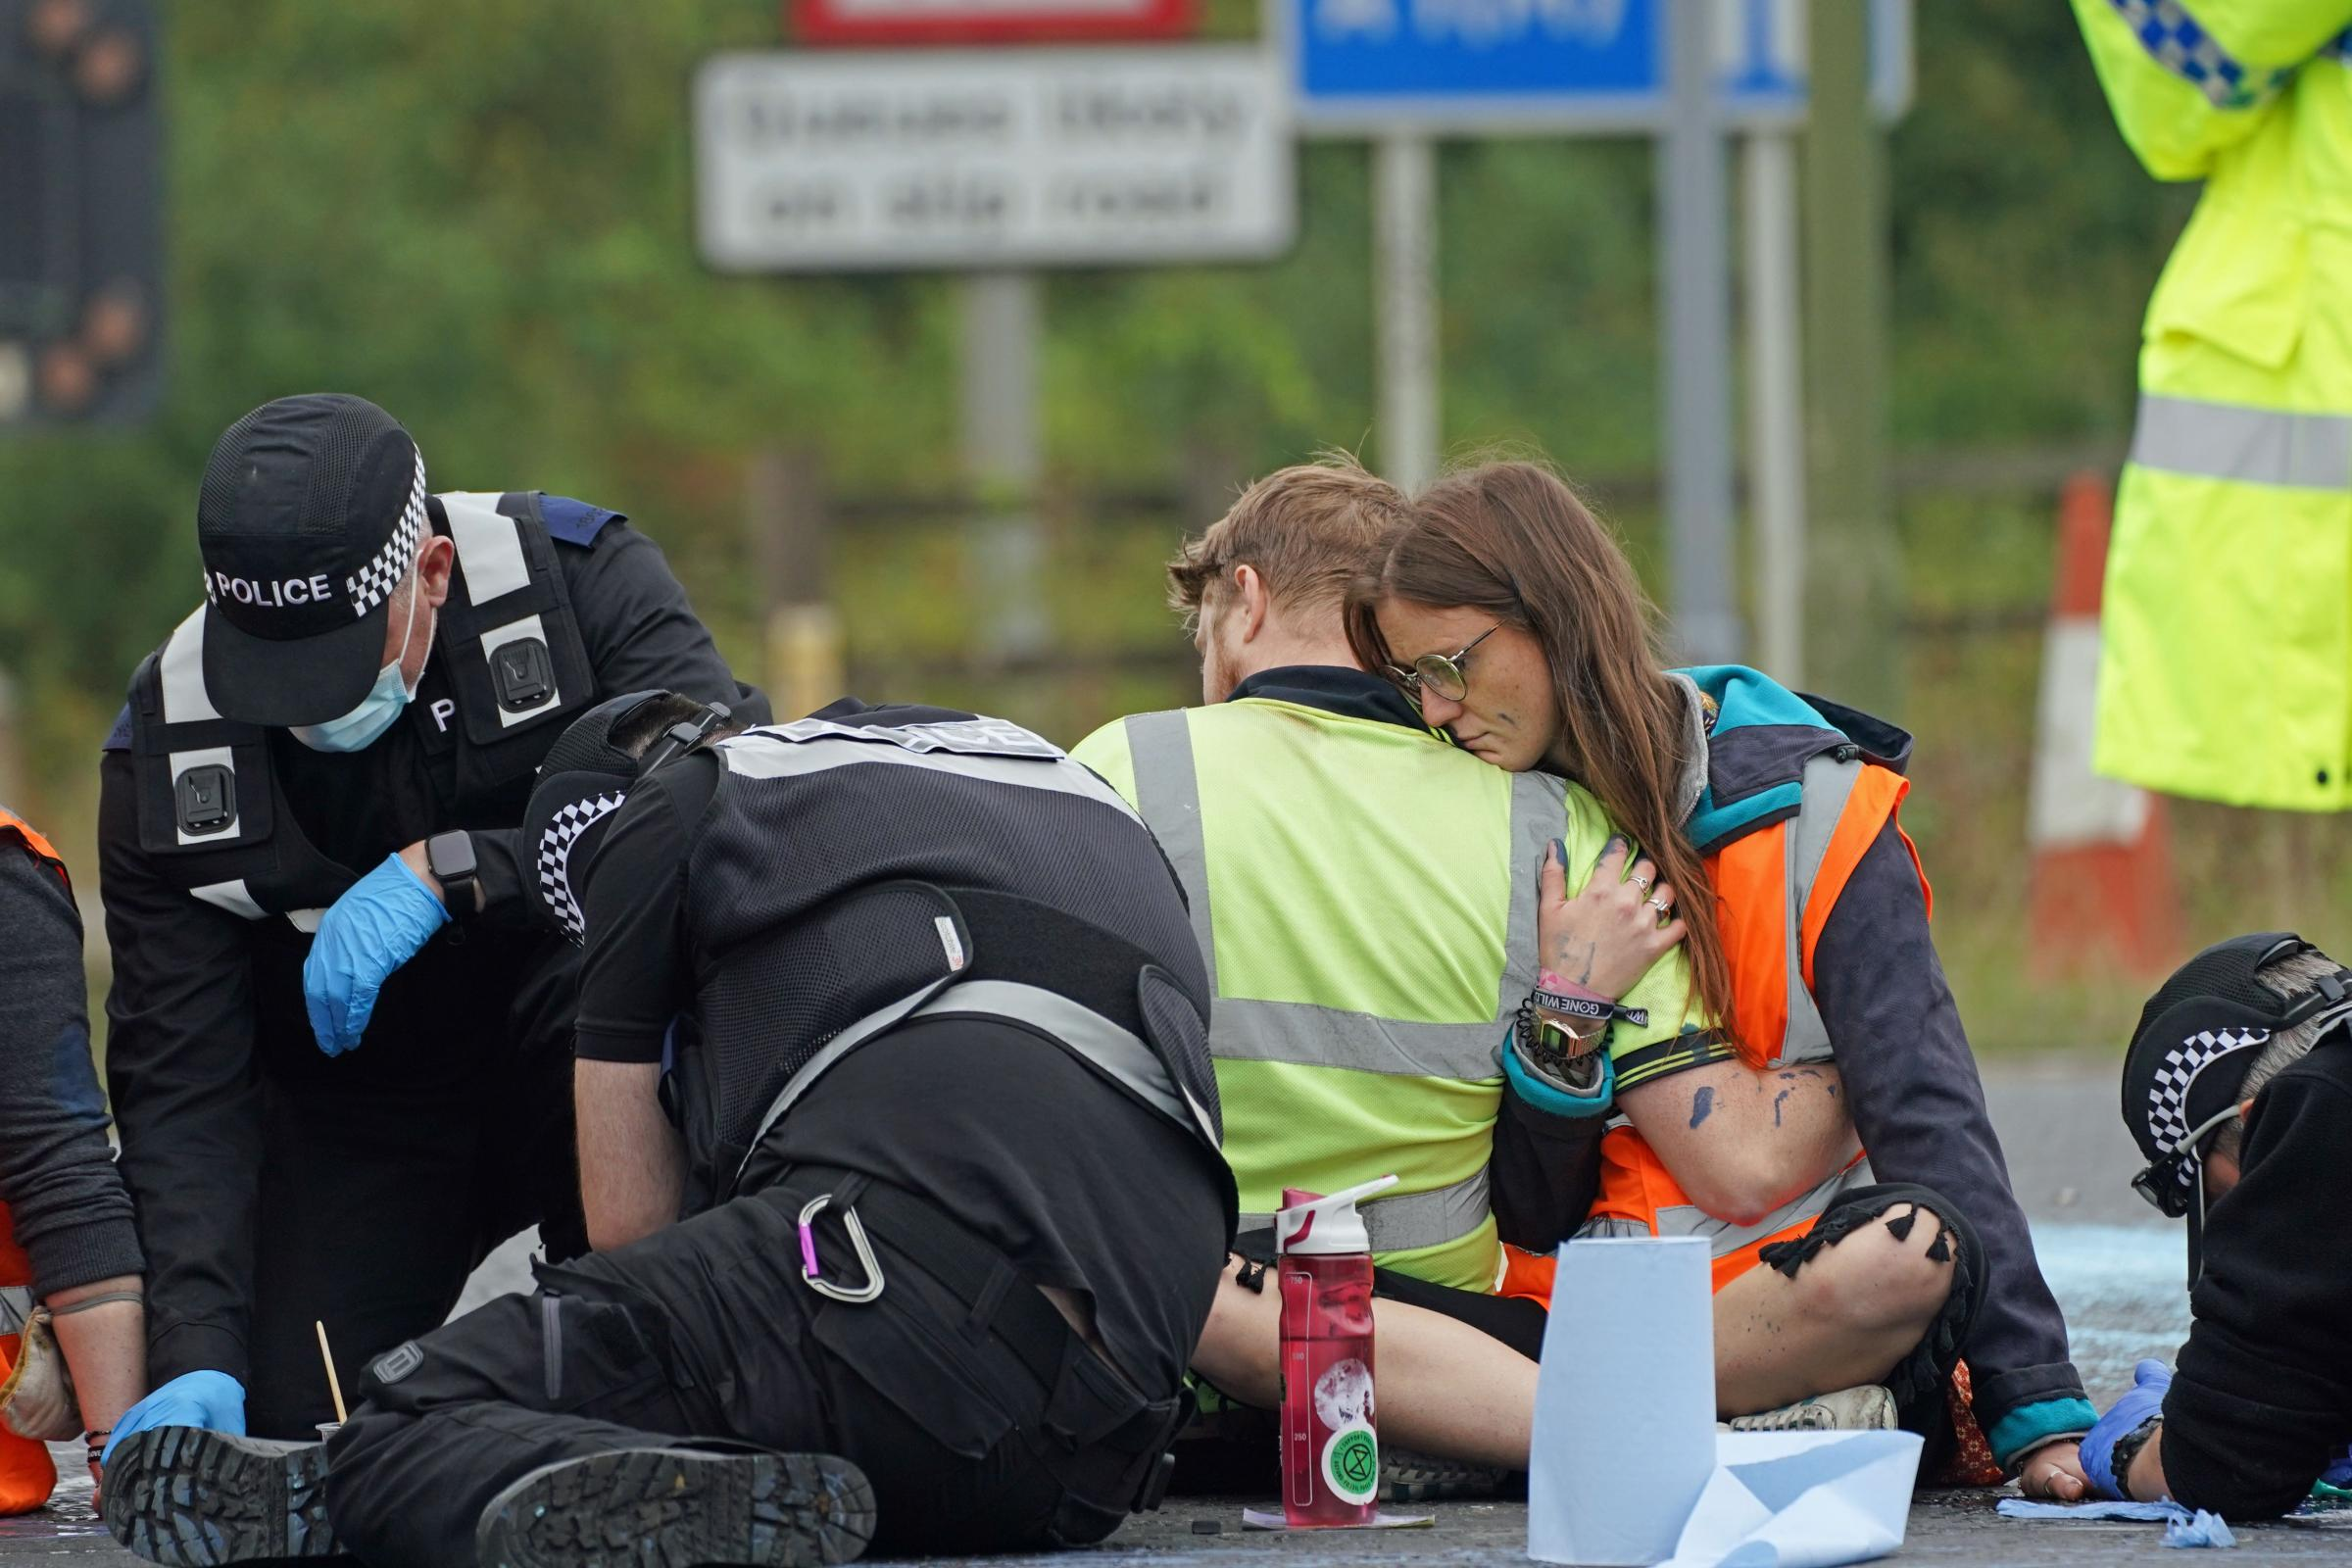 Environment protests lead to 29 arrests after M25 junction blocked